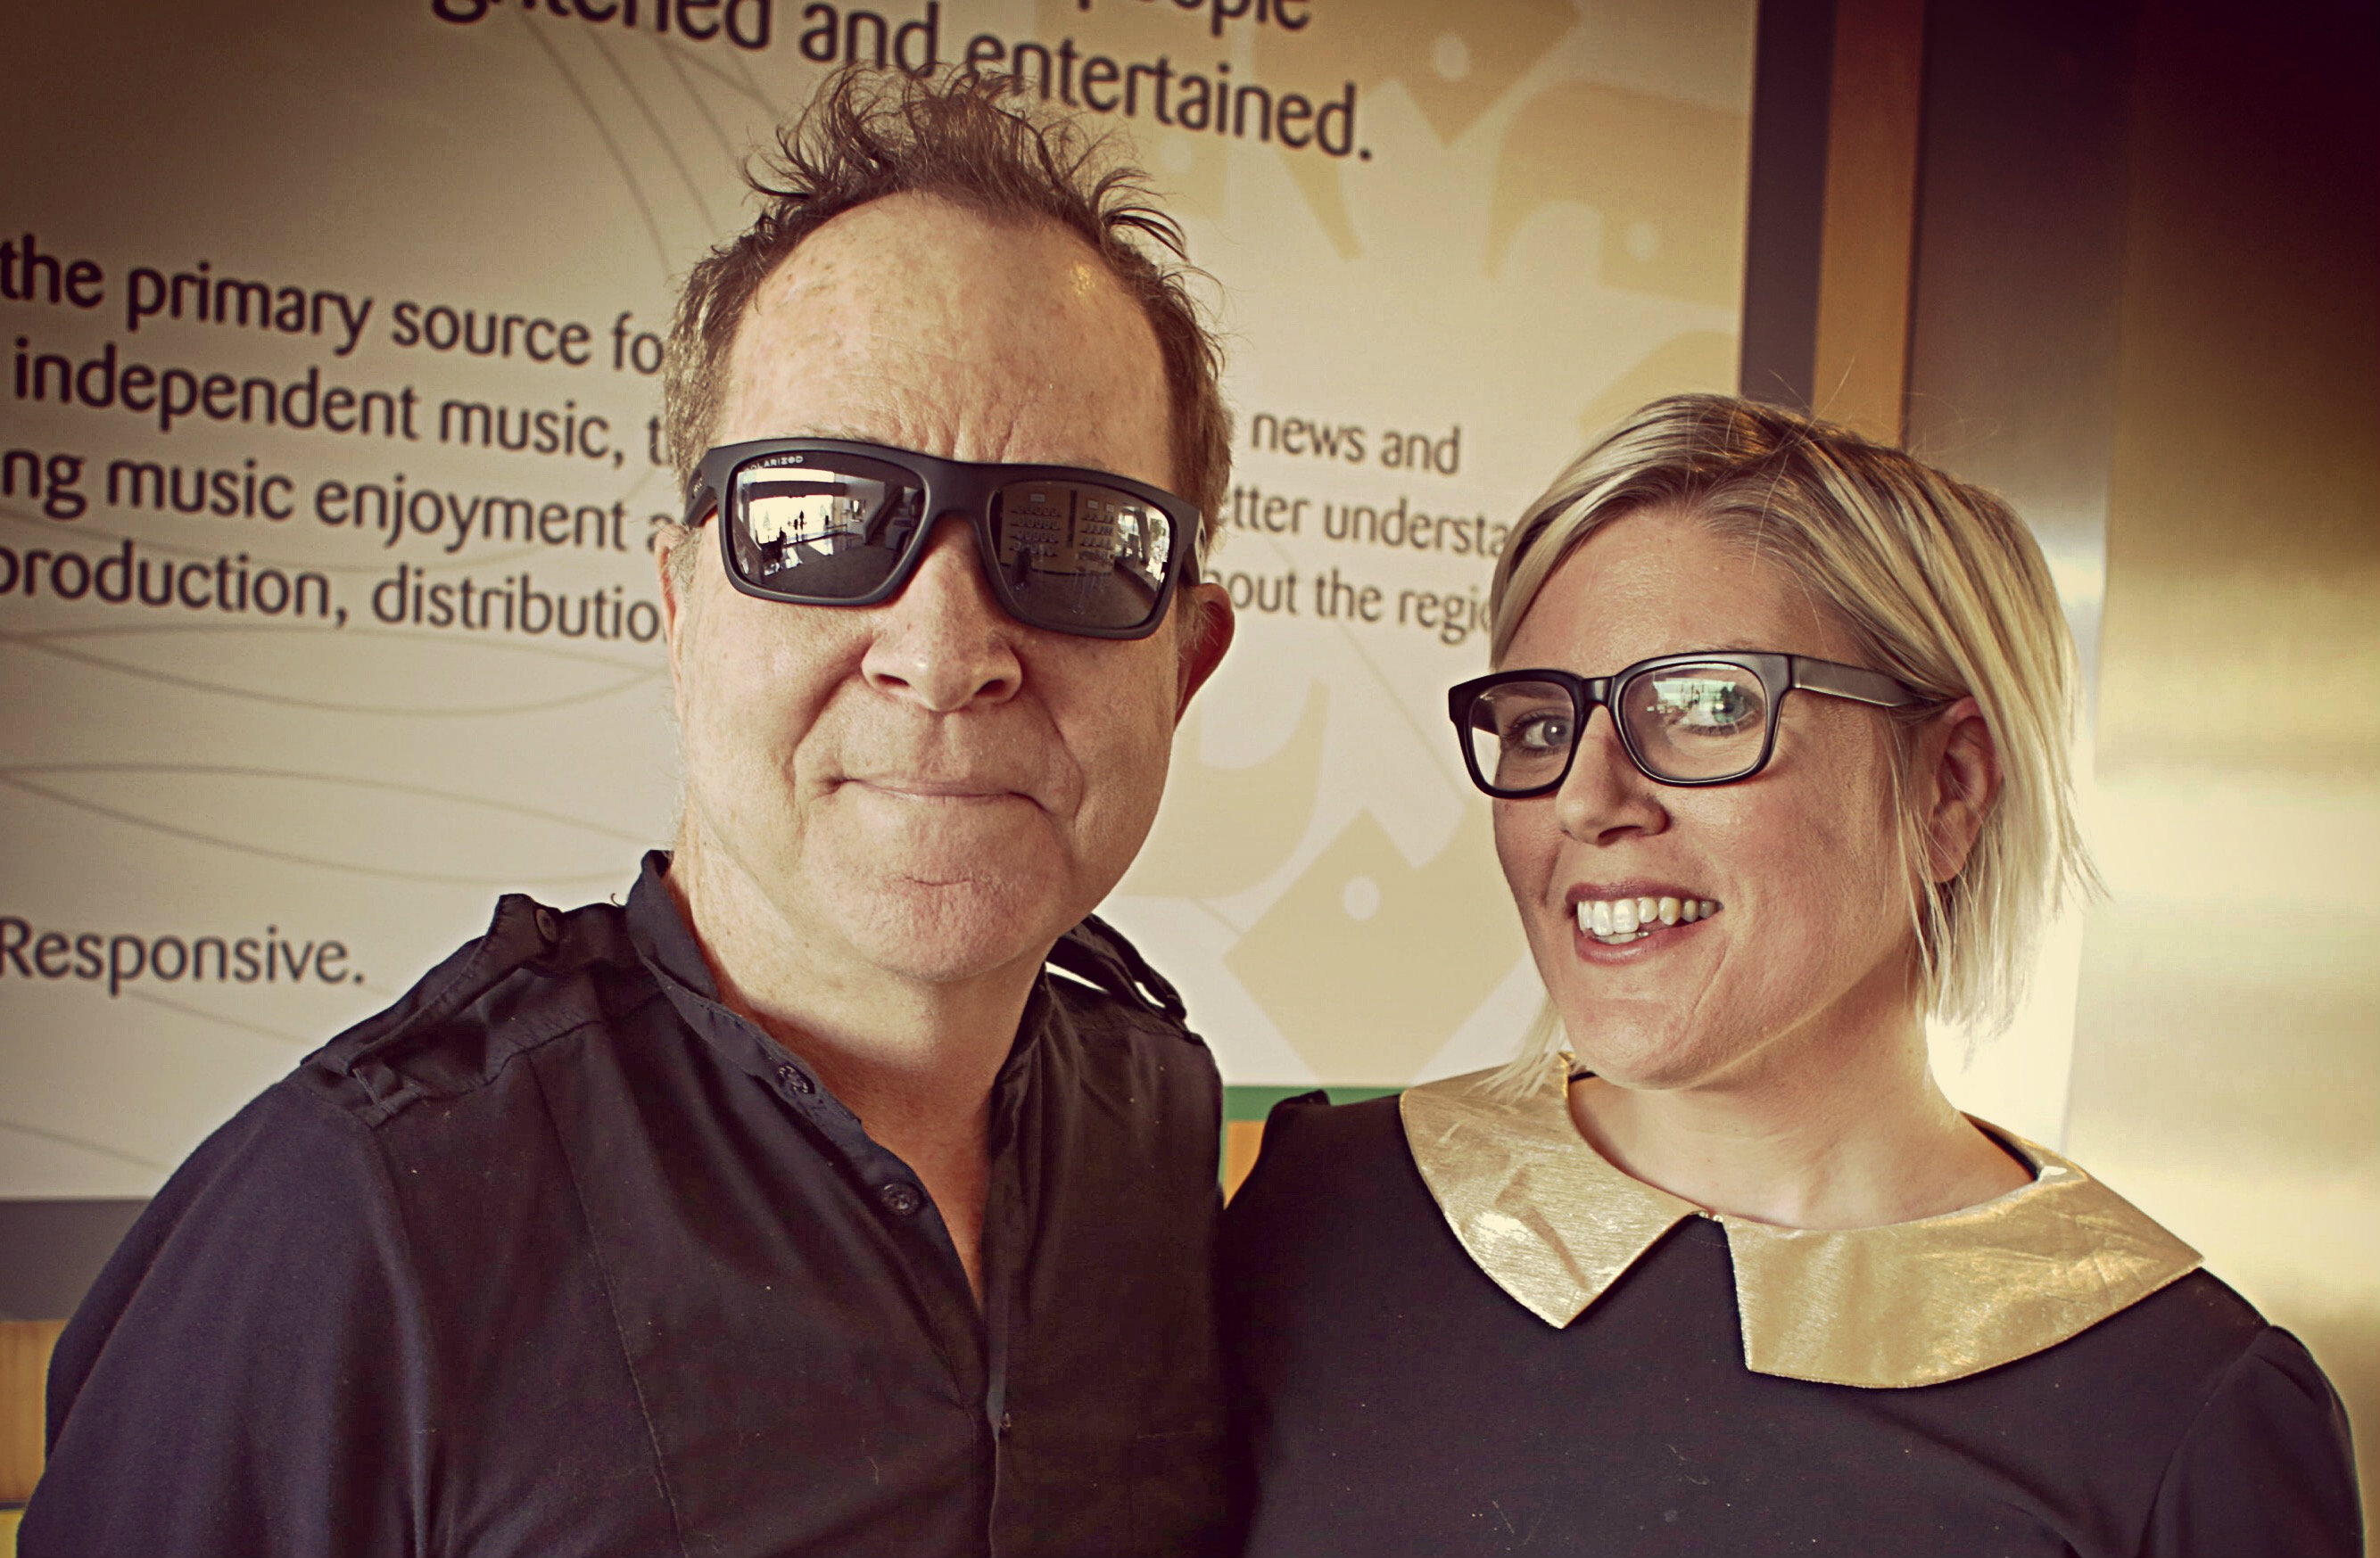 Photo: Fred Schneider of The B-52's and Alisha Sweeney crop